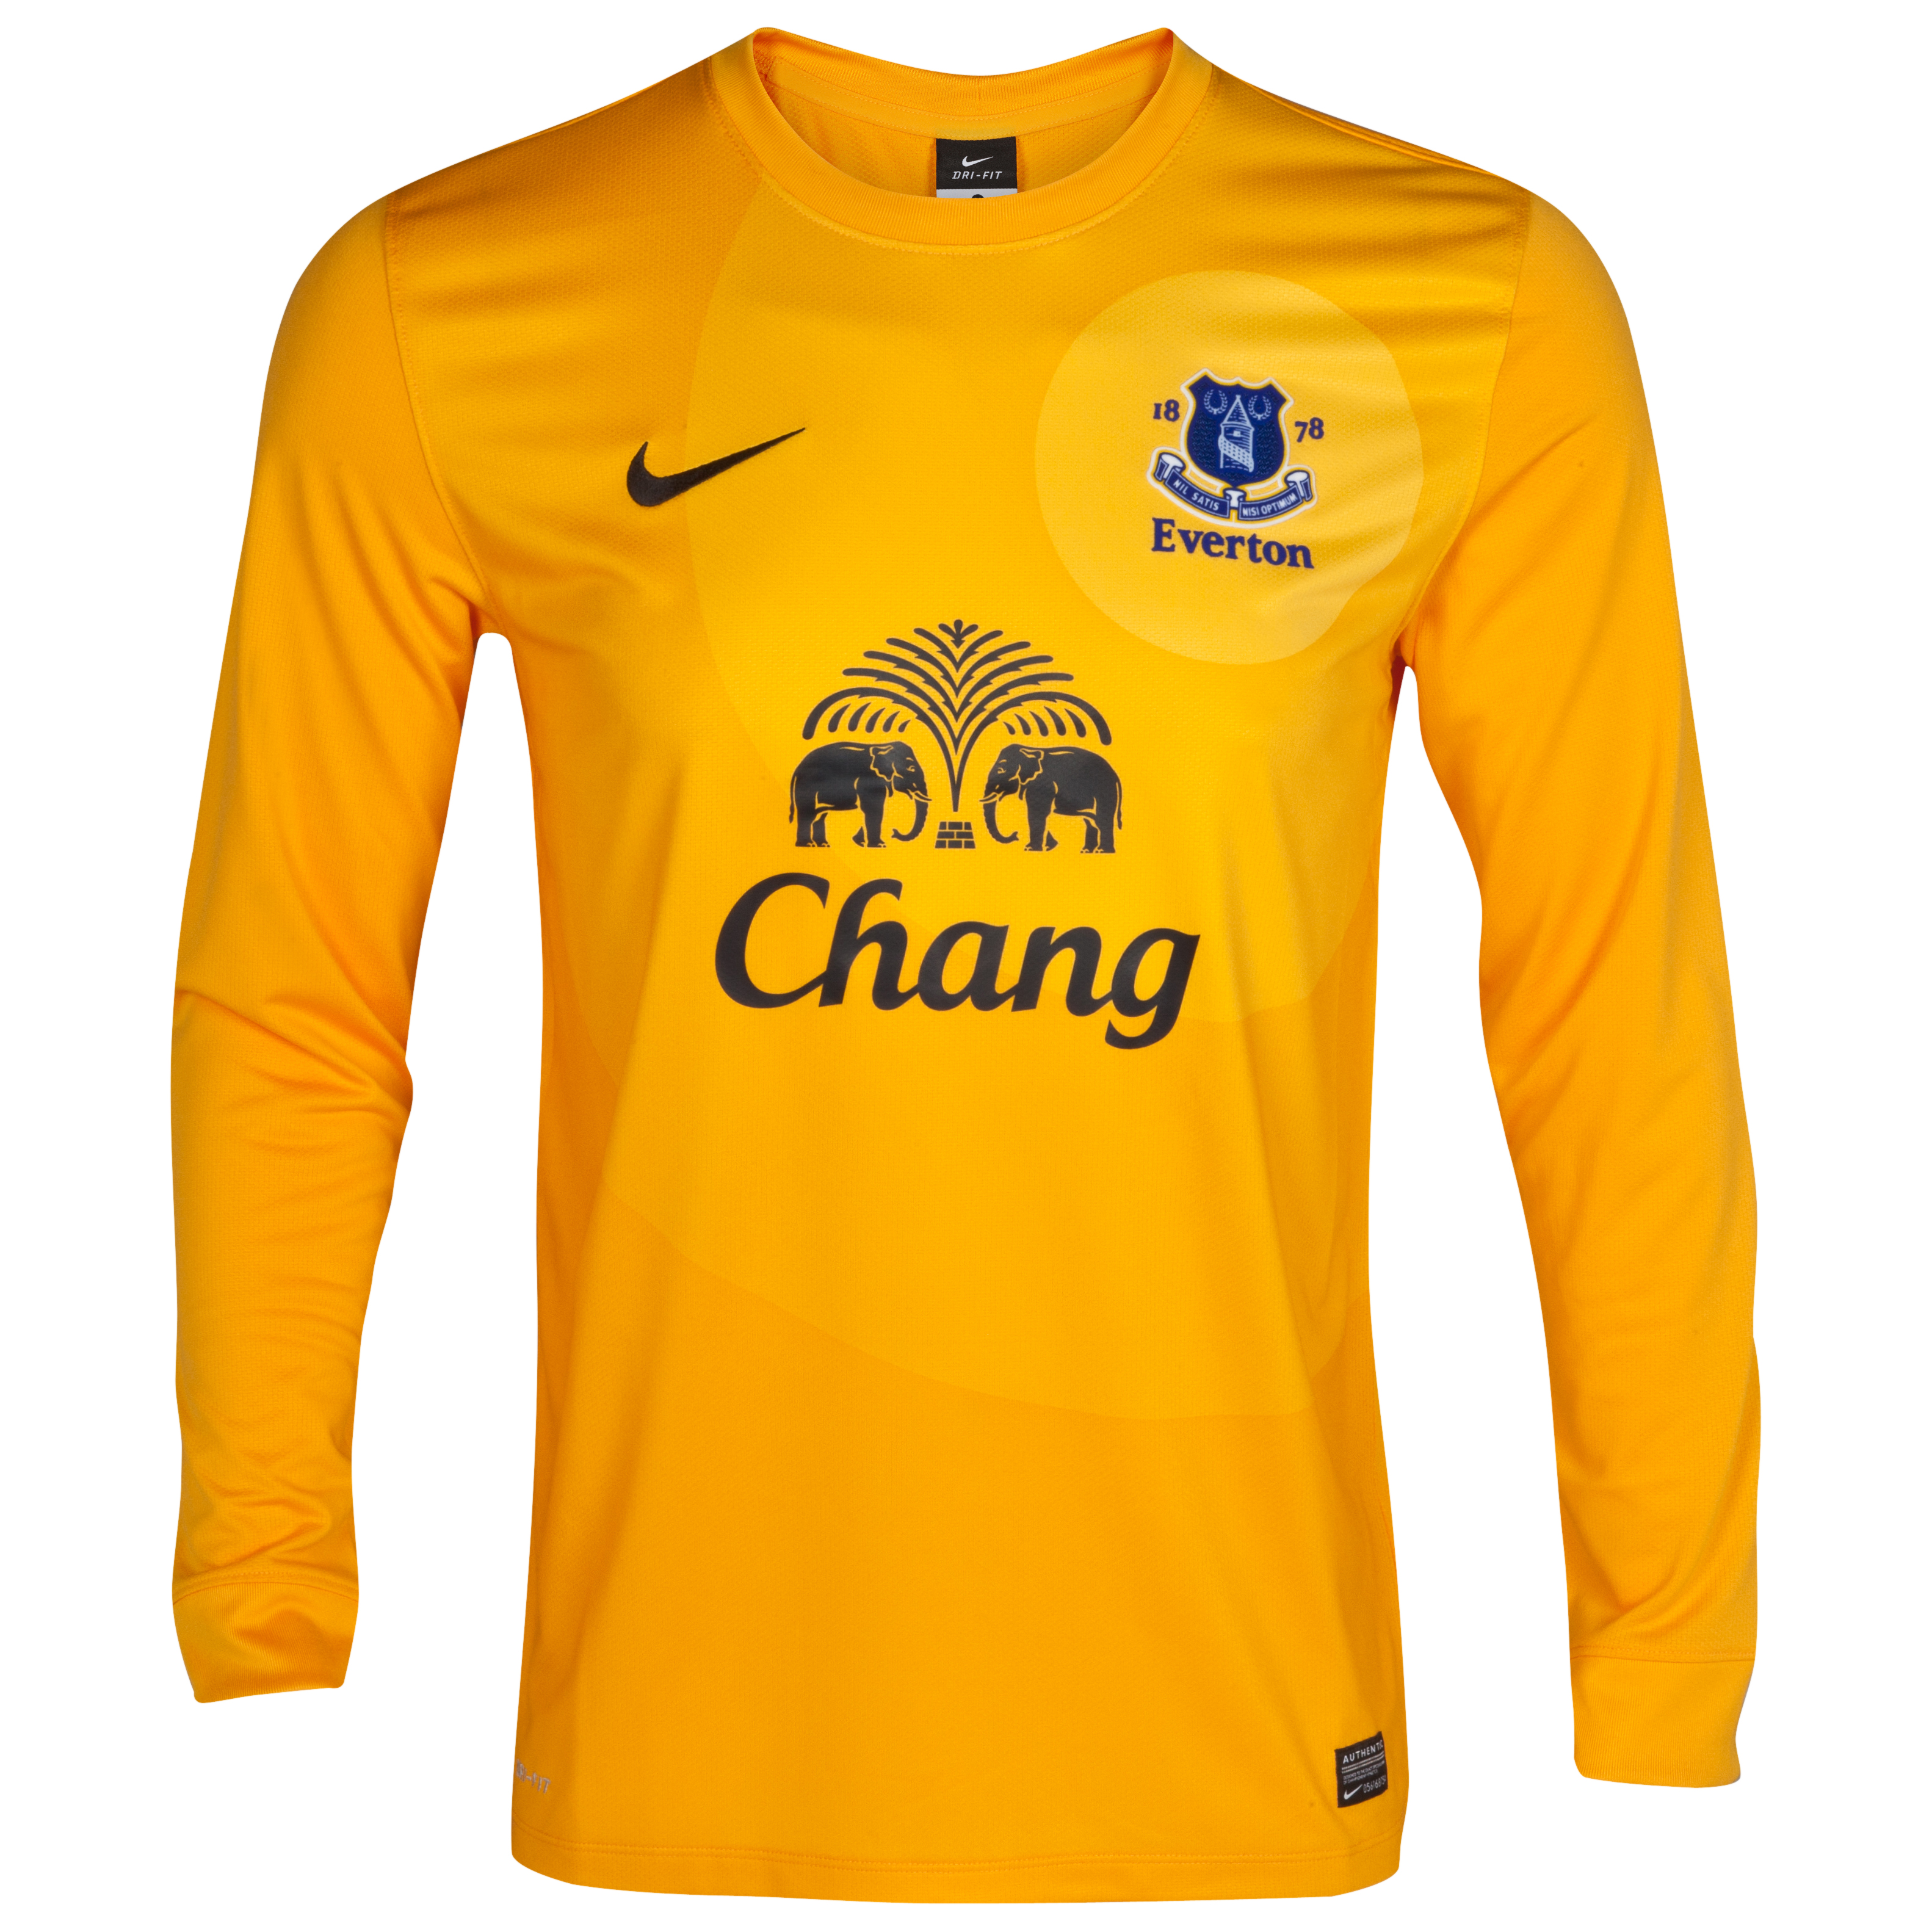 Everton Away Goalkeeper Shirt 2012/13